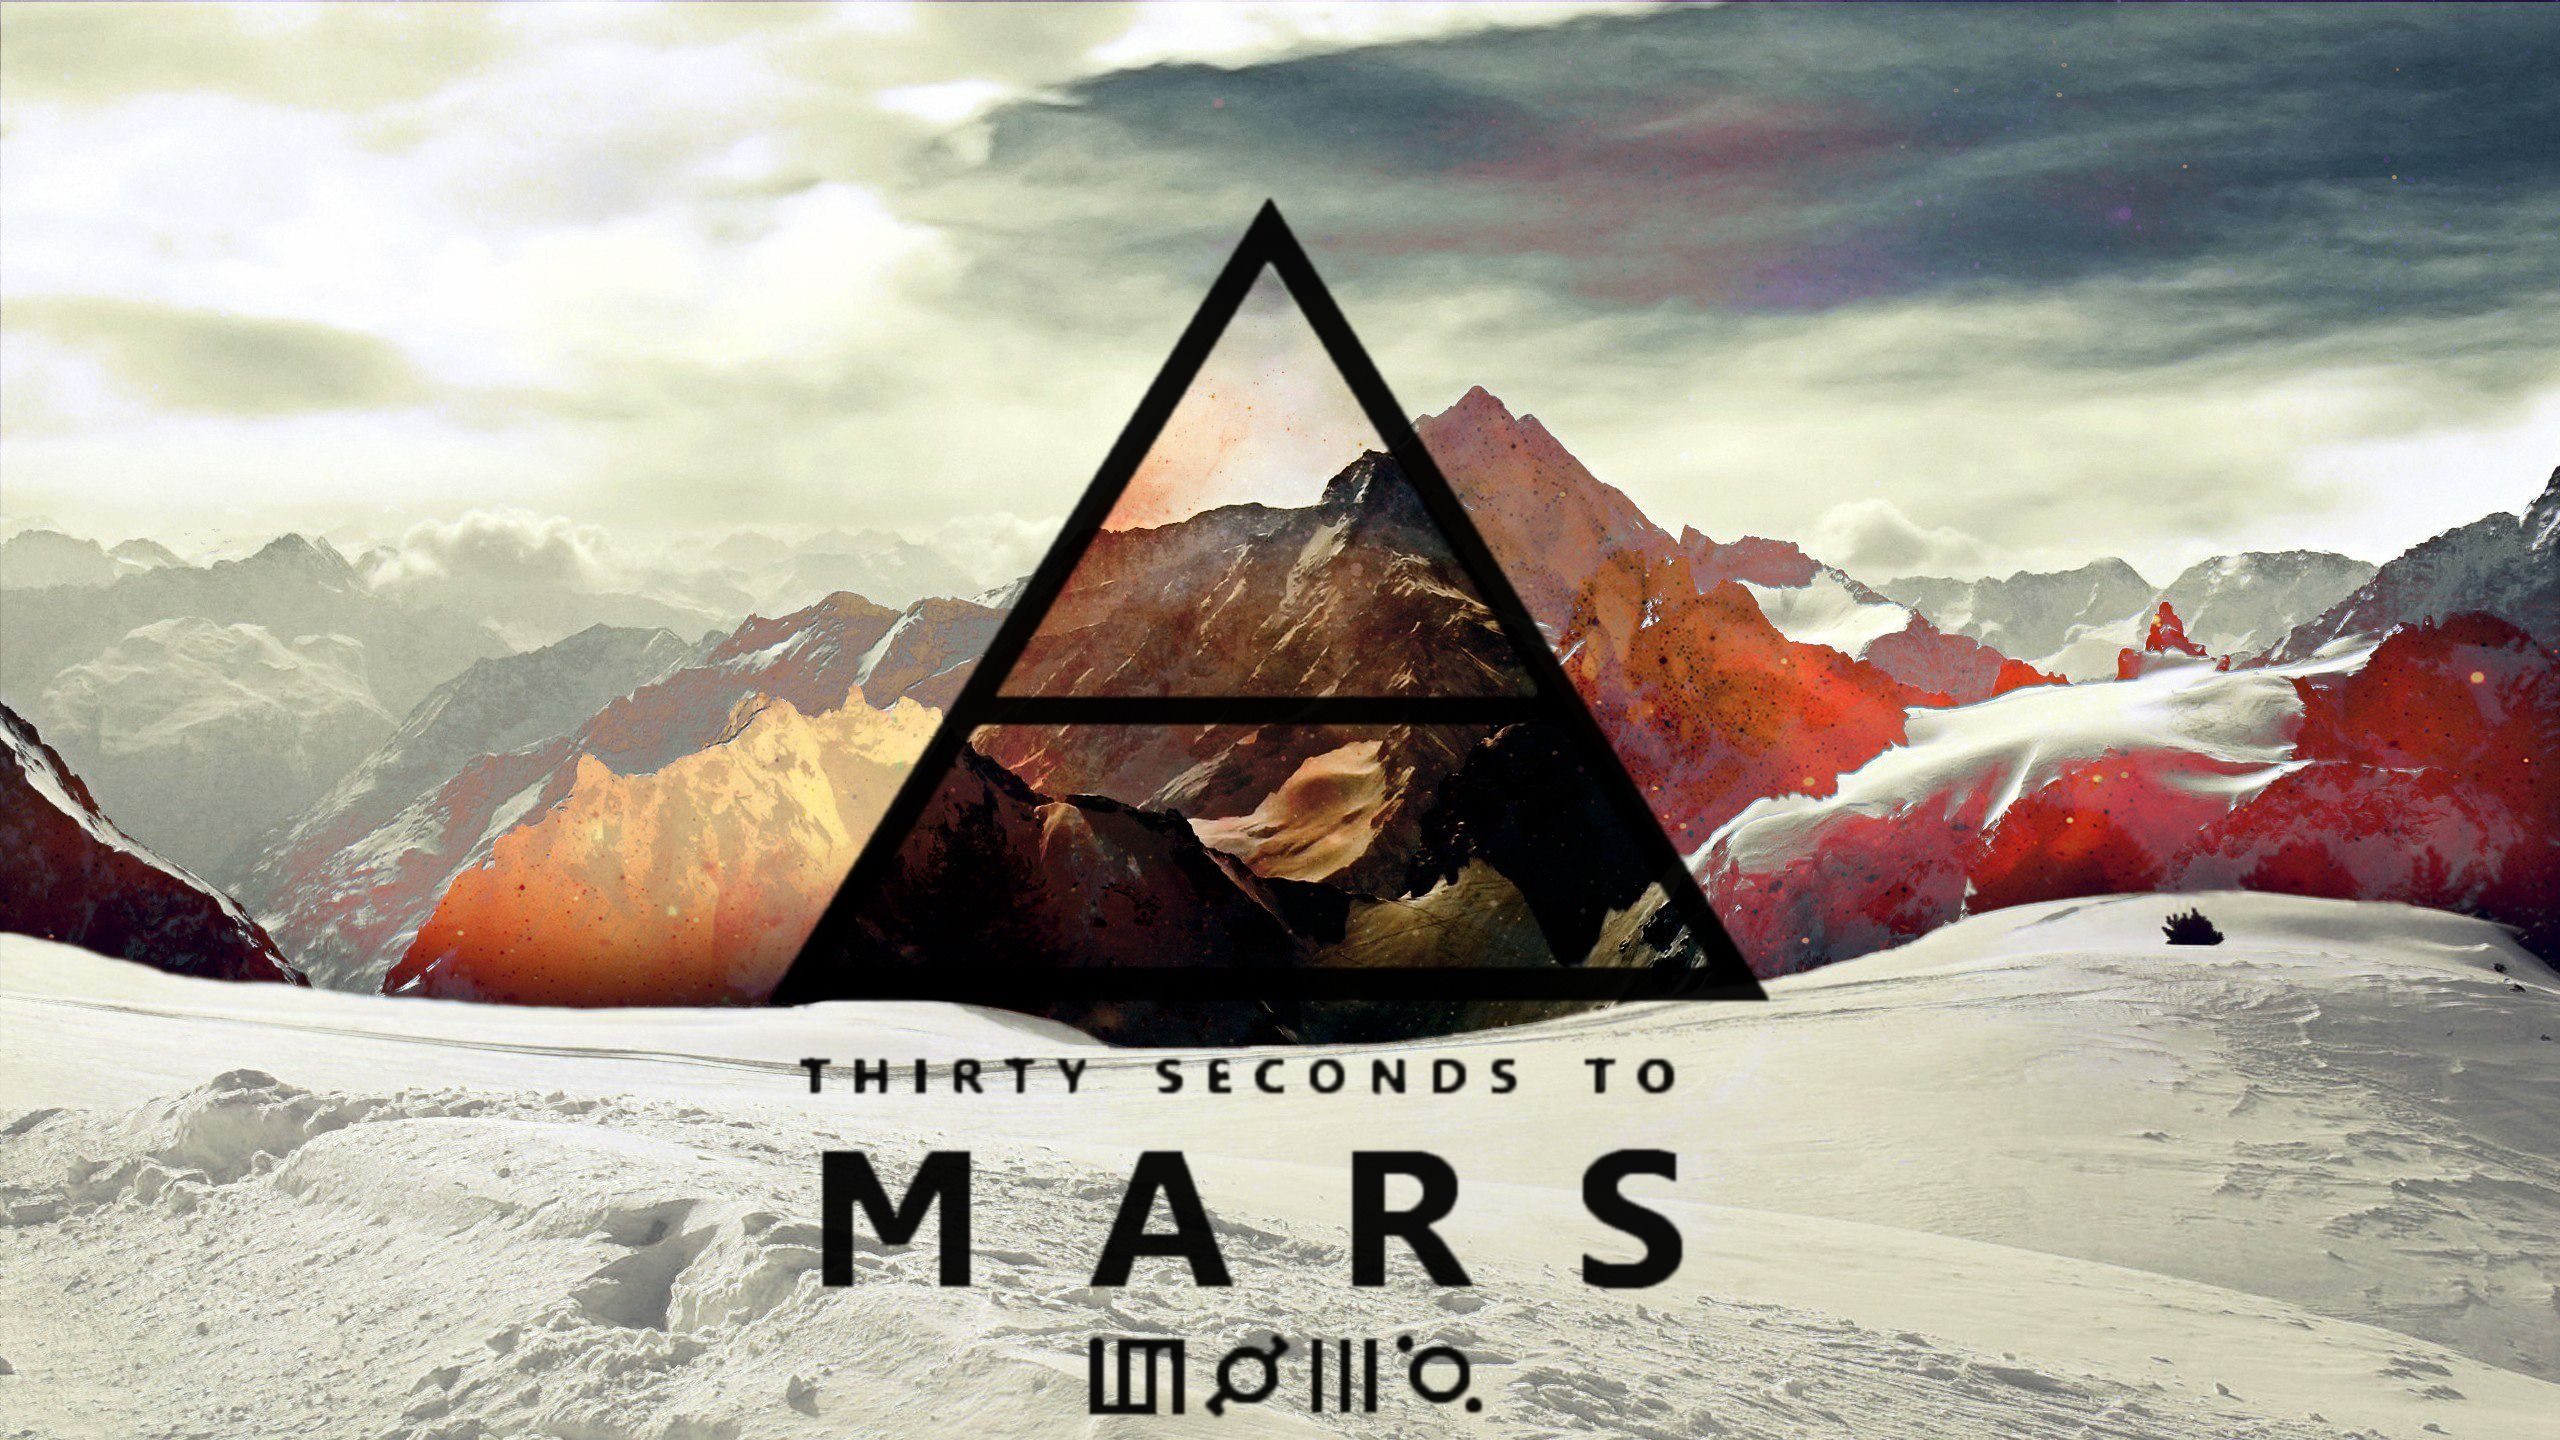 Images from 30 stm tattoos